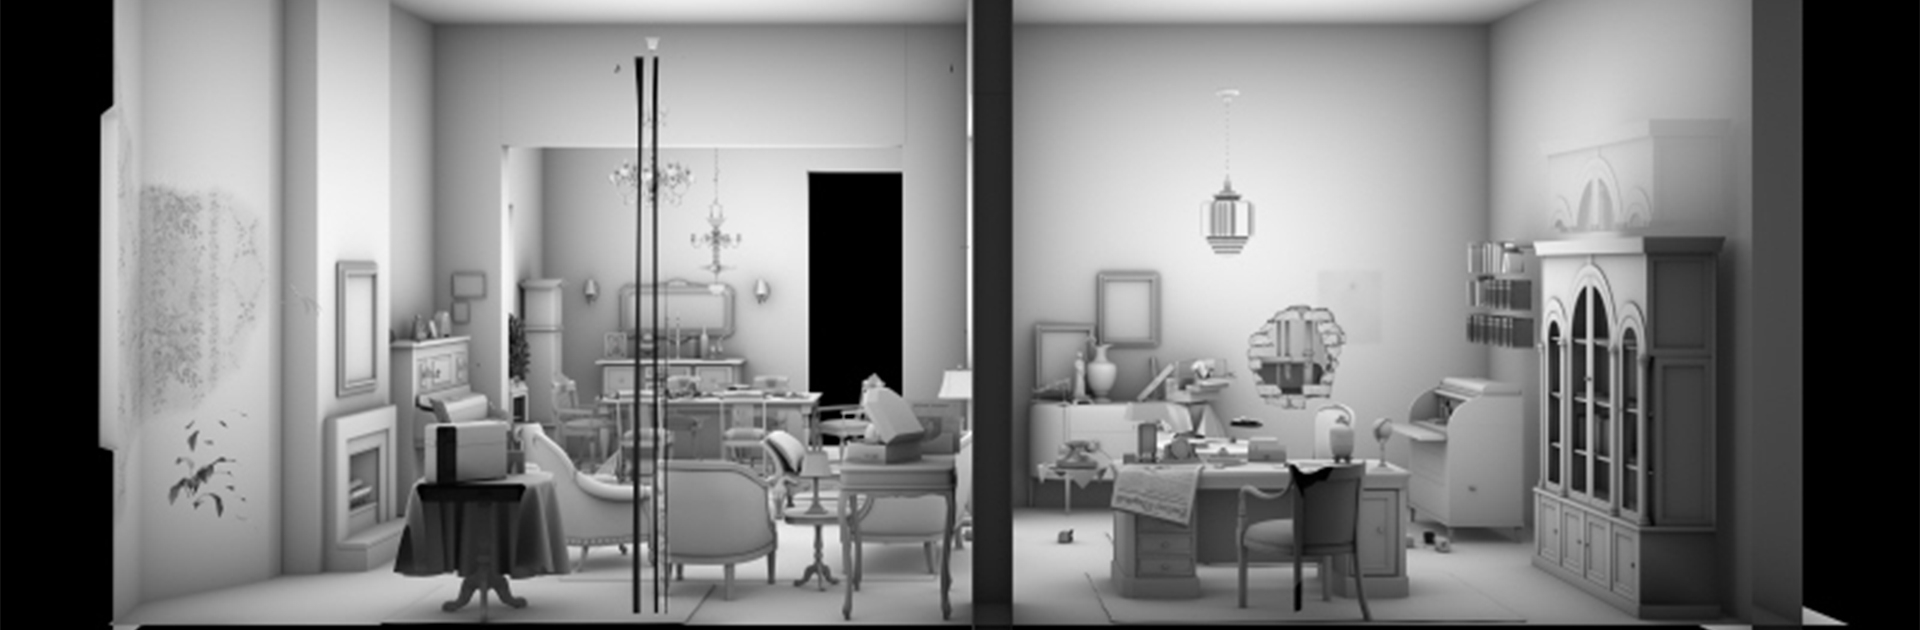 View of the model of a living room